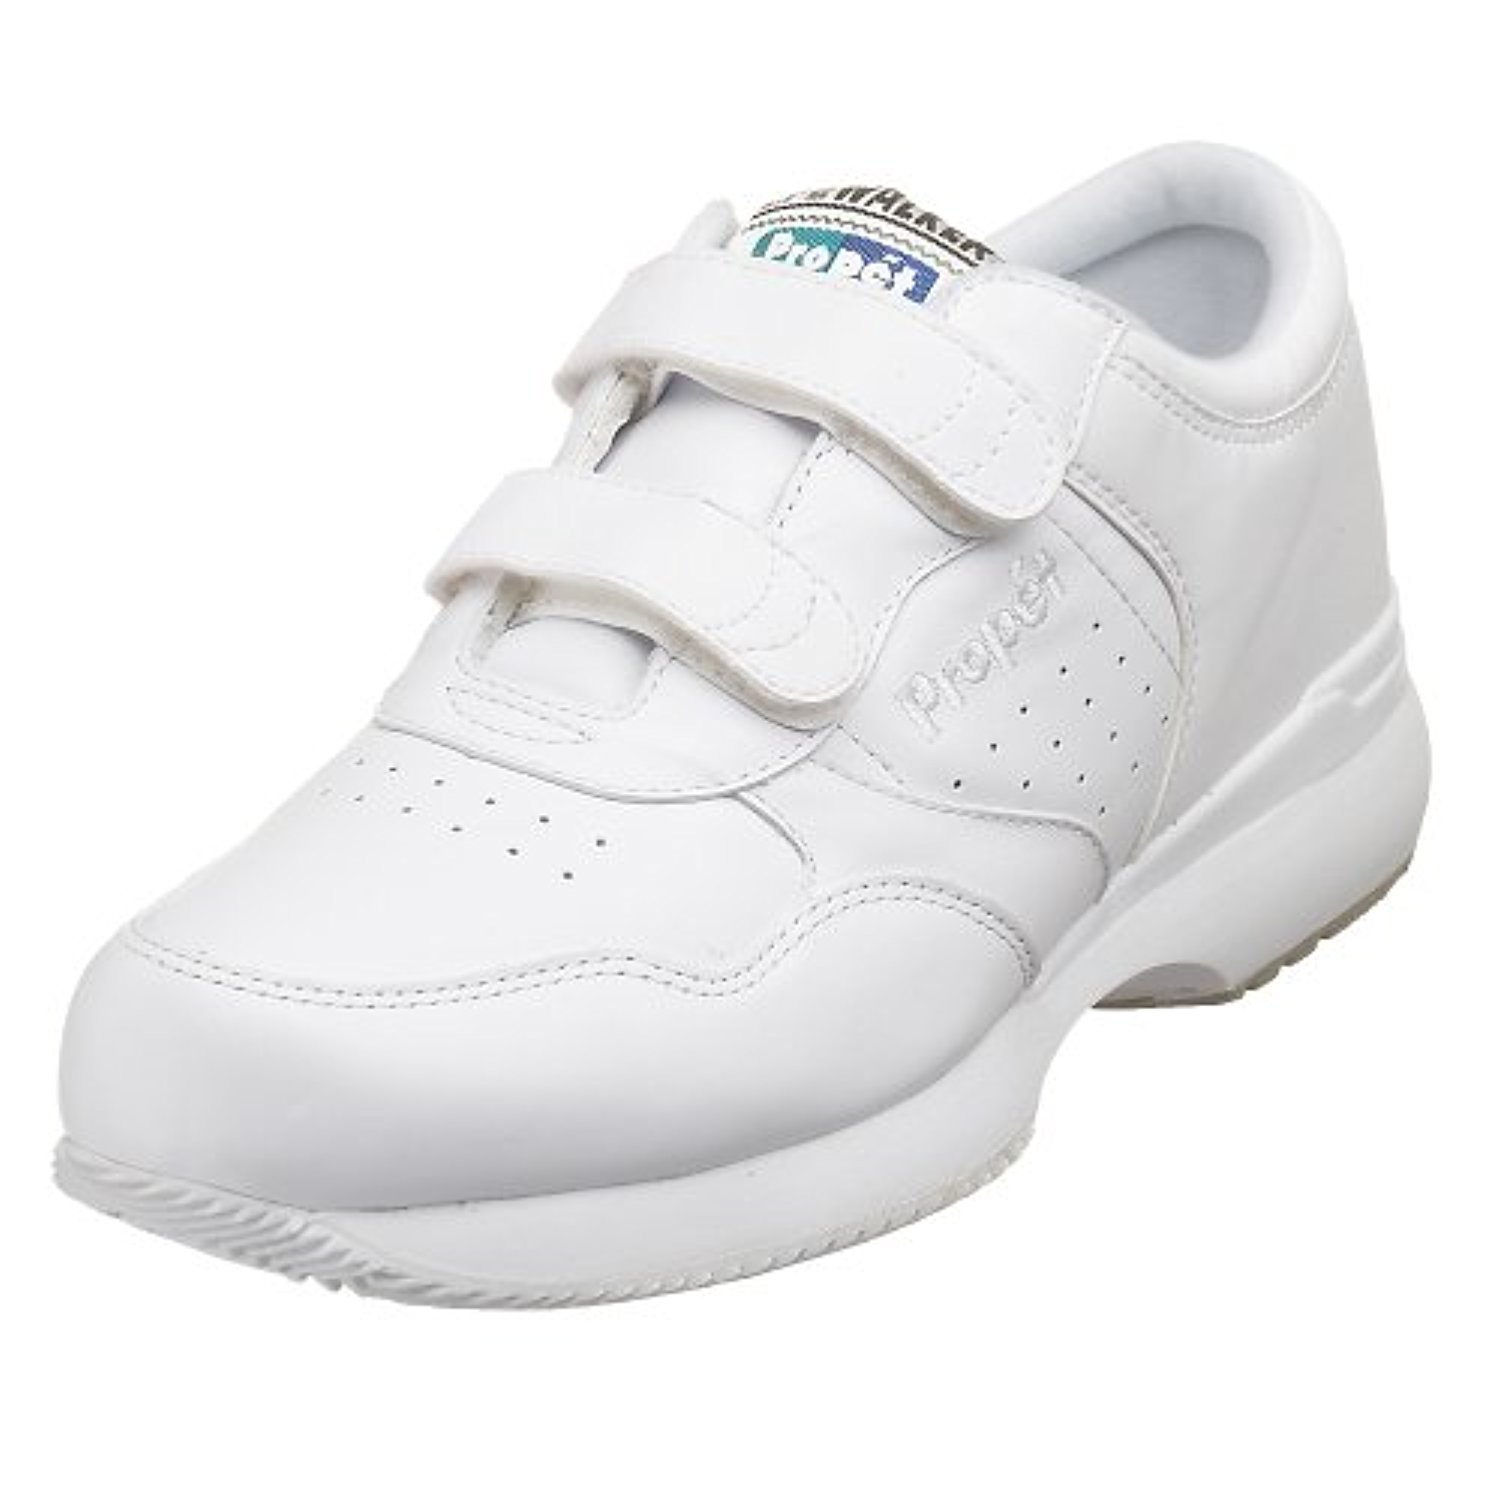 3E Propet Mens LifeWalker Strap Shoe White 9.5 X /& Oxy Cleaner Bundle